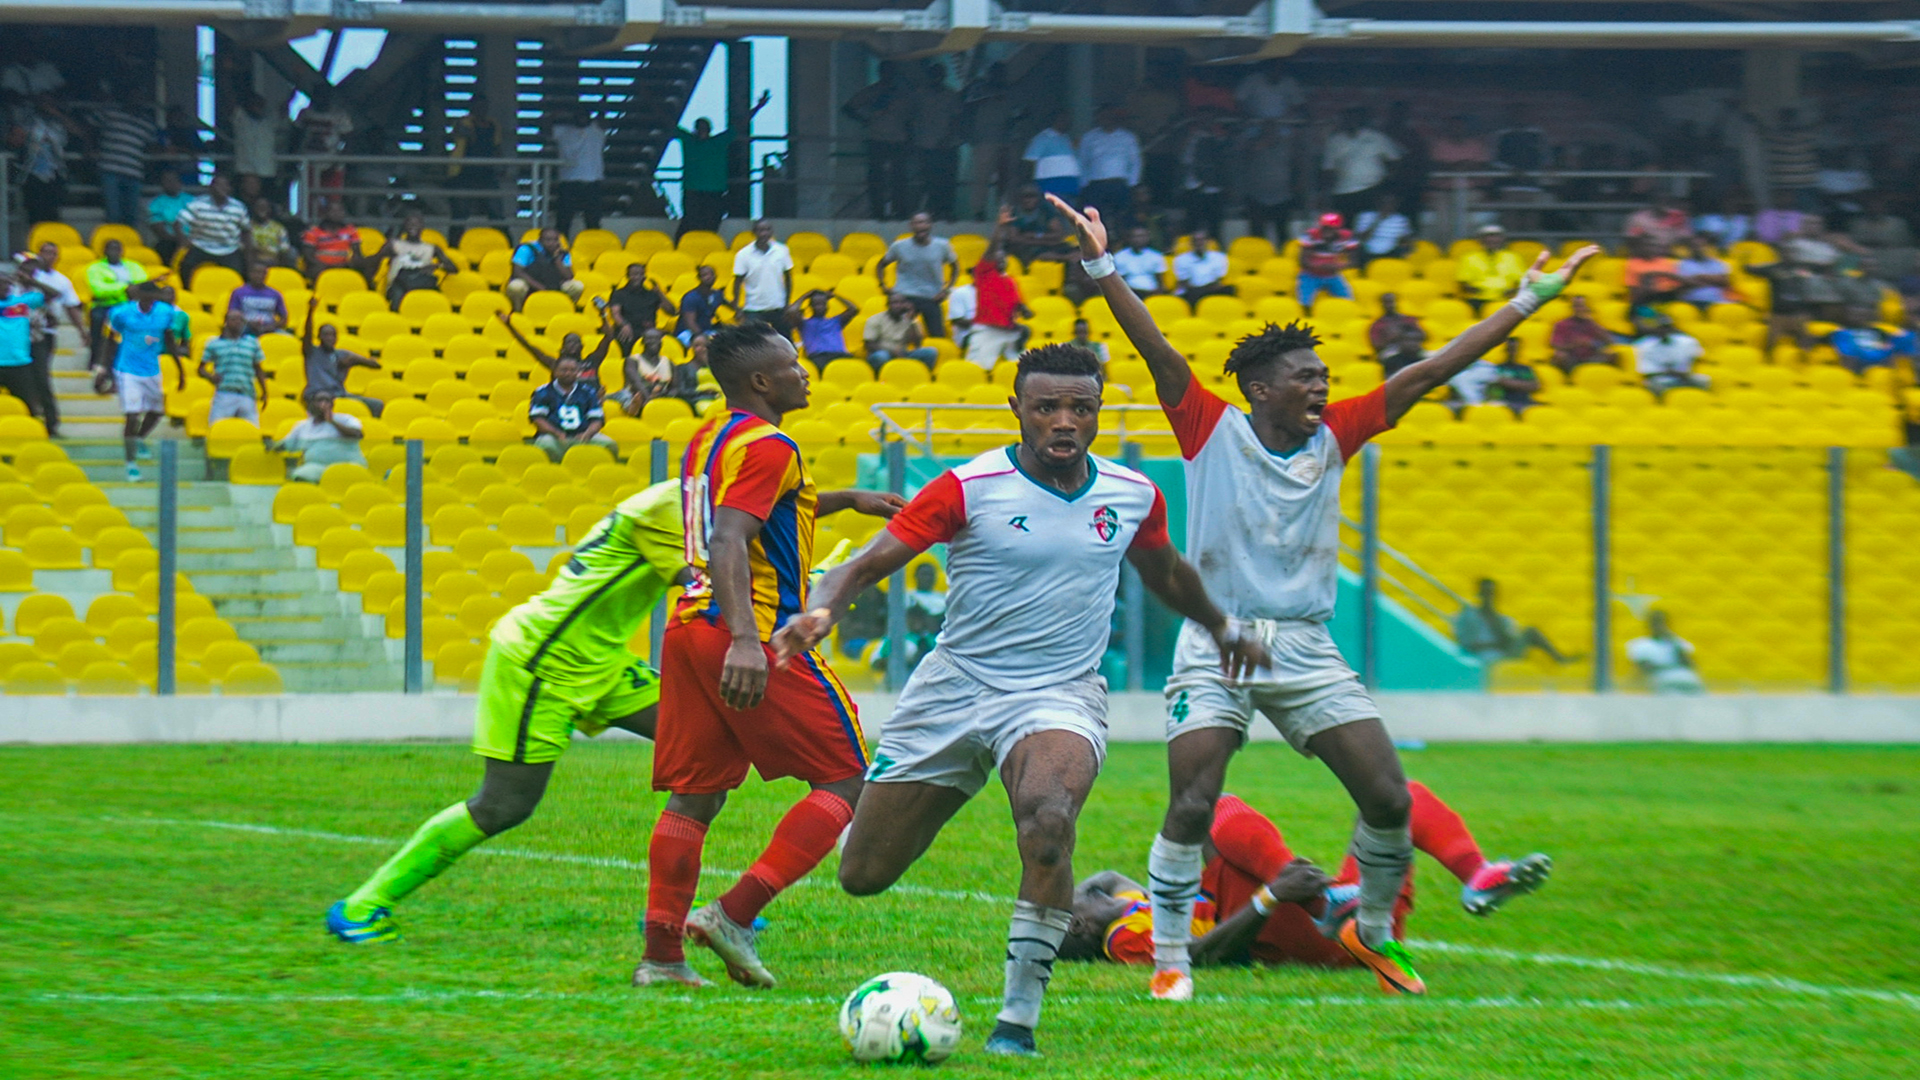 Hearts of Oak high in confidence ahead of Liberty Professionals clash - Odoom